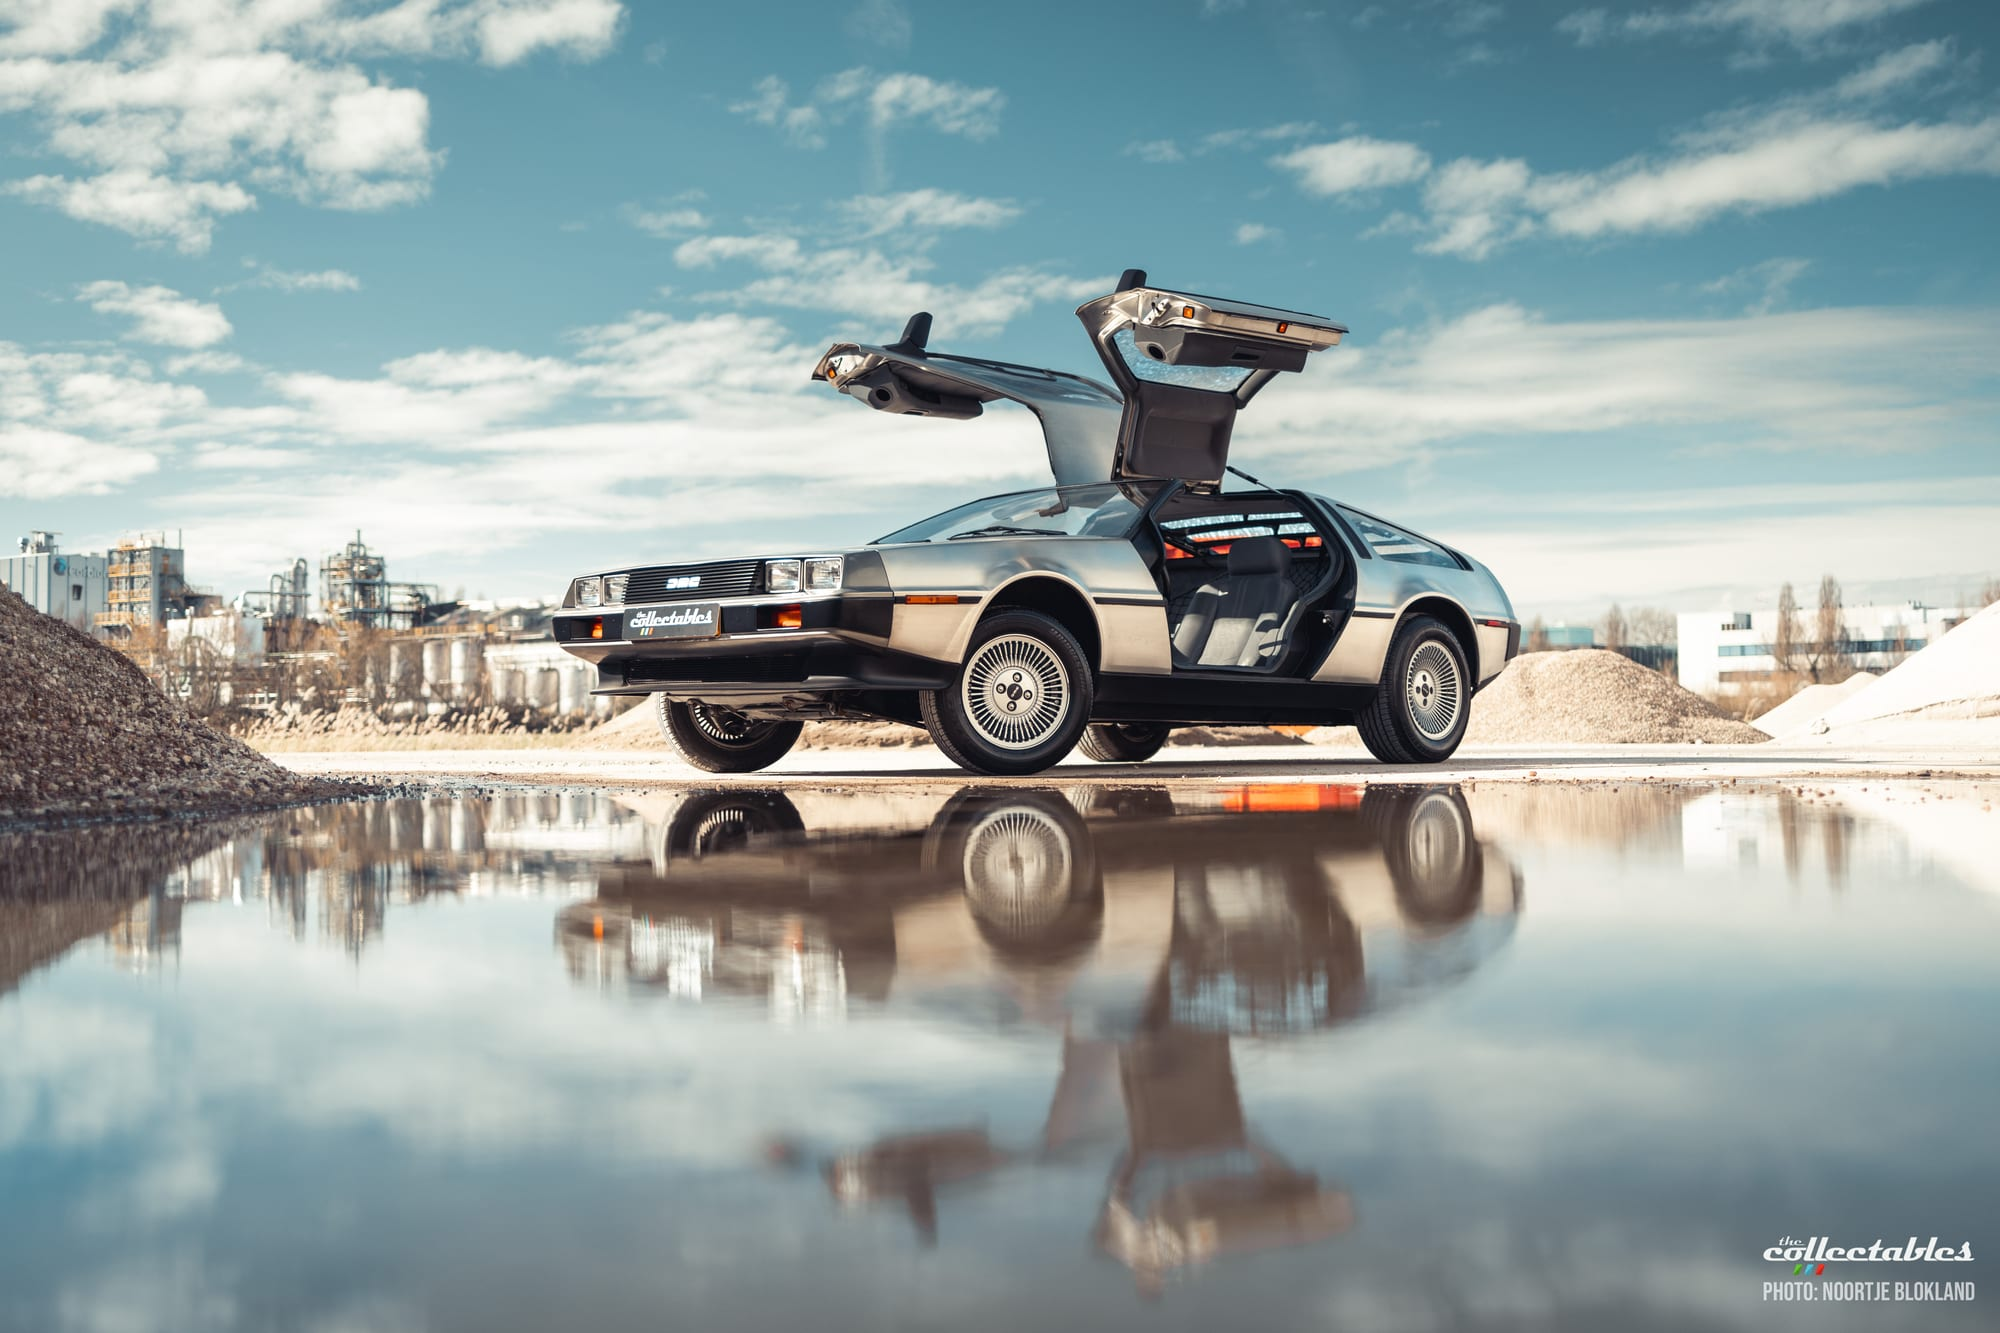 The real DeLorean from Back to the Future will be auctioned!